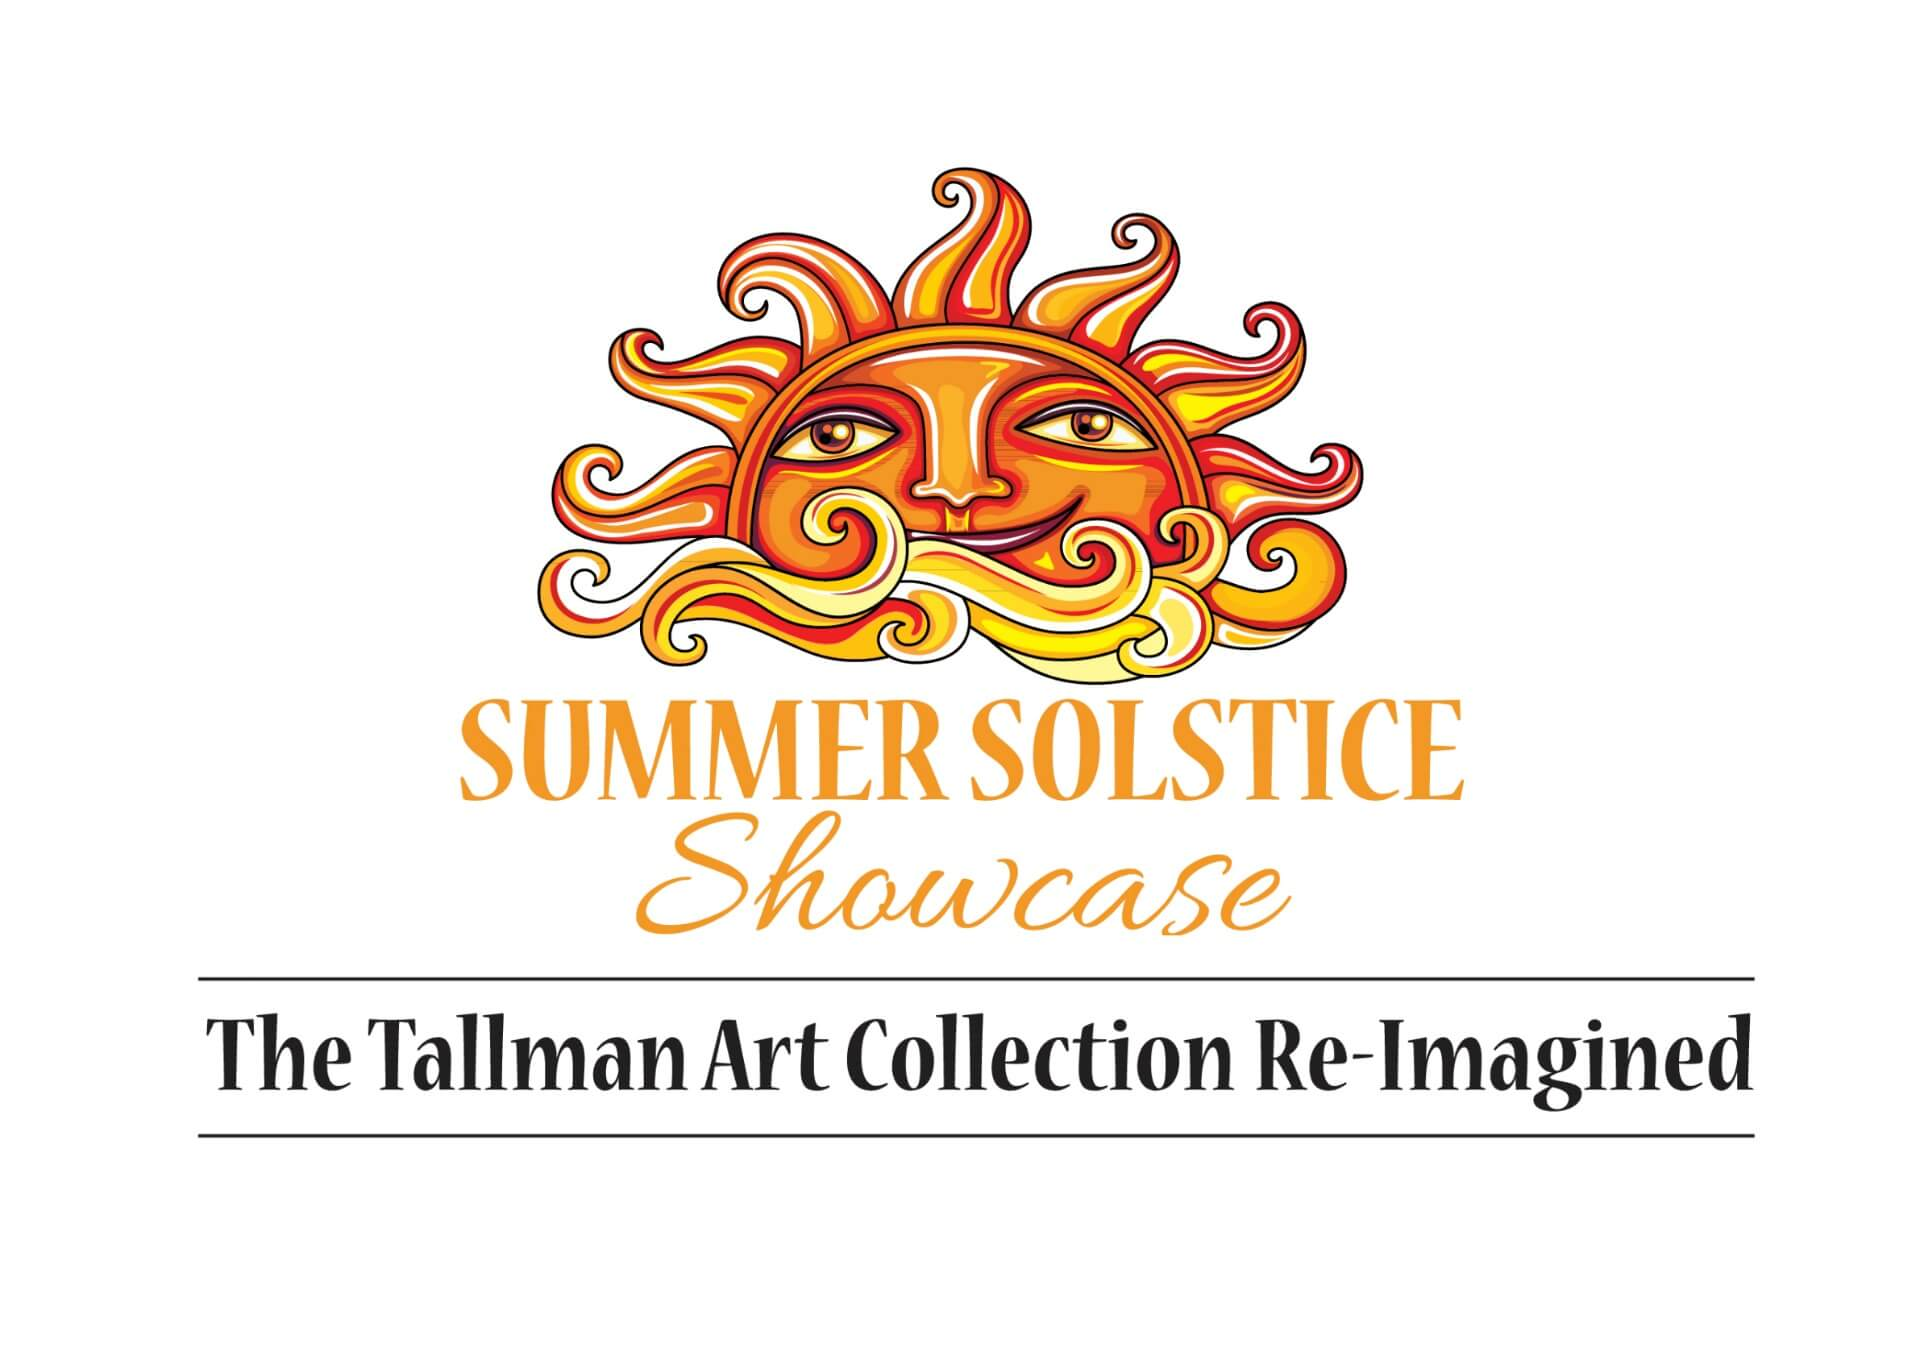 Summer Solstice Showcase 2018